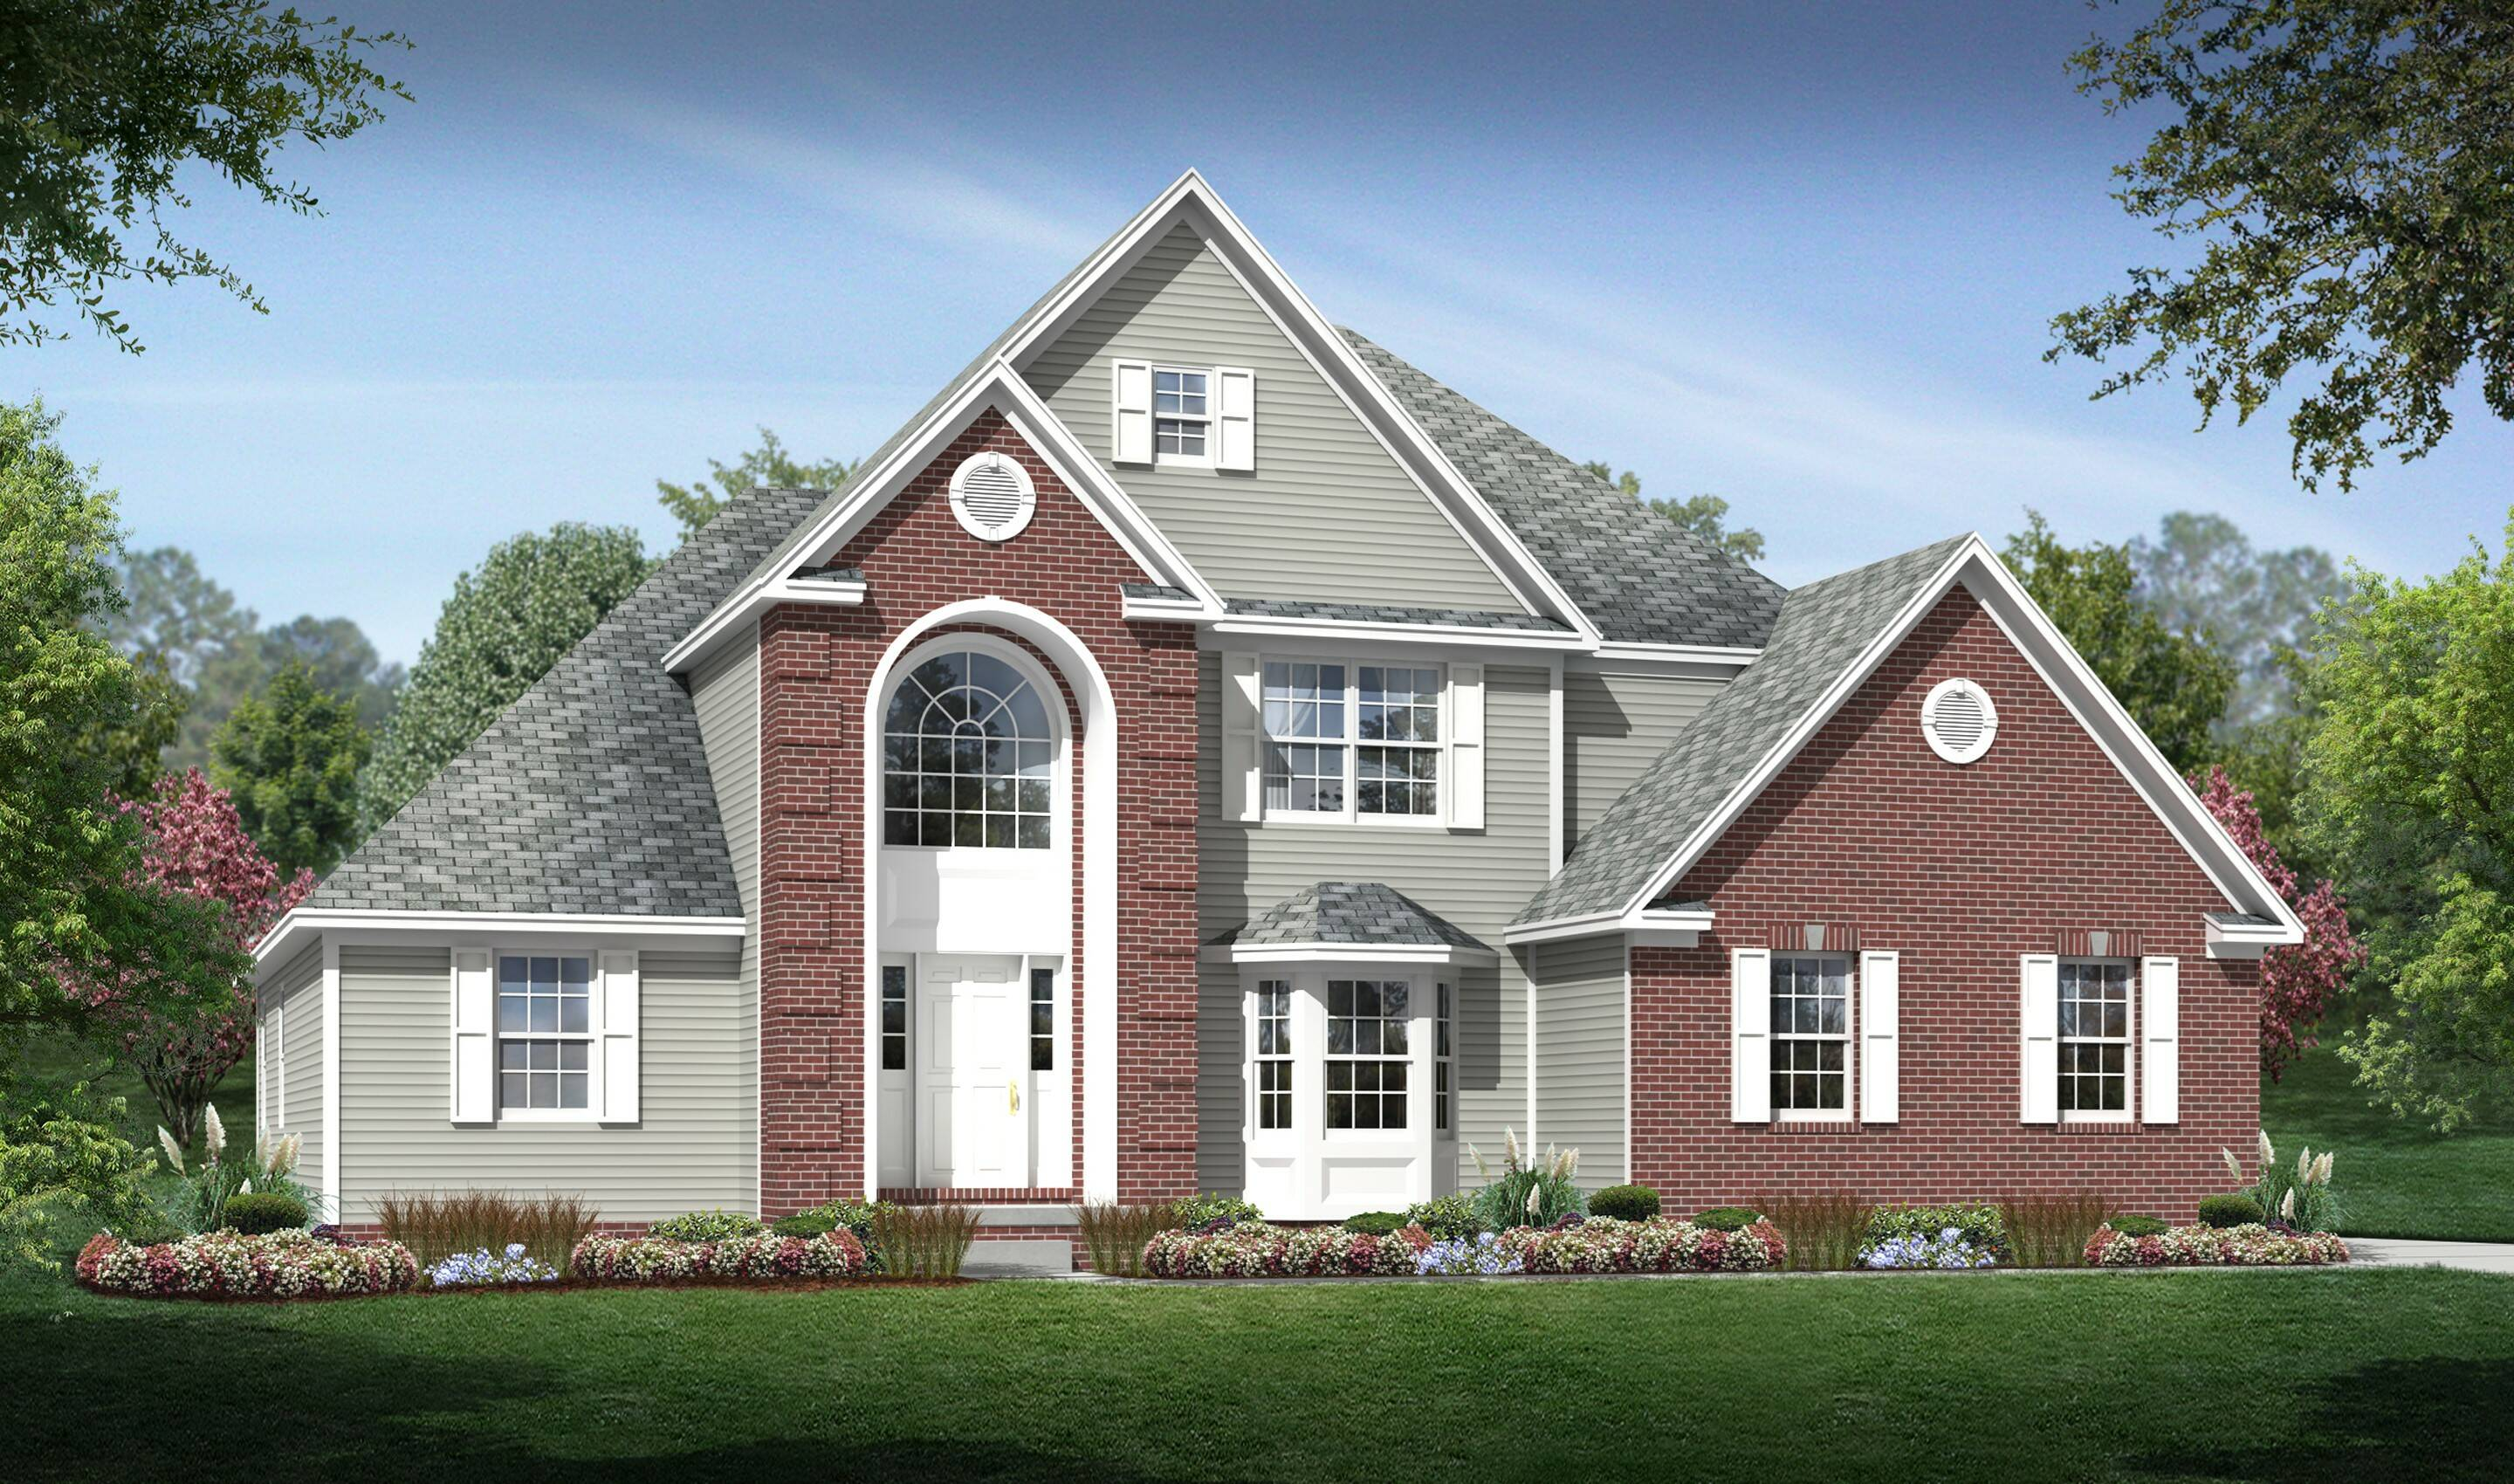 100 K Hovnanian Home Design Gallery Line K At Willowsford New Homes In Ashburn Va 100